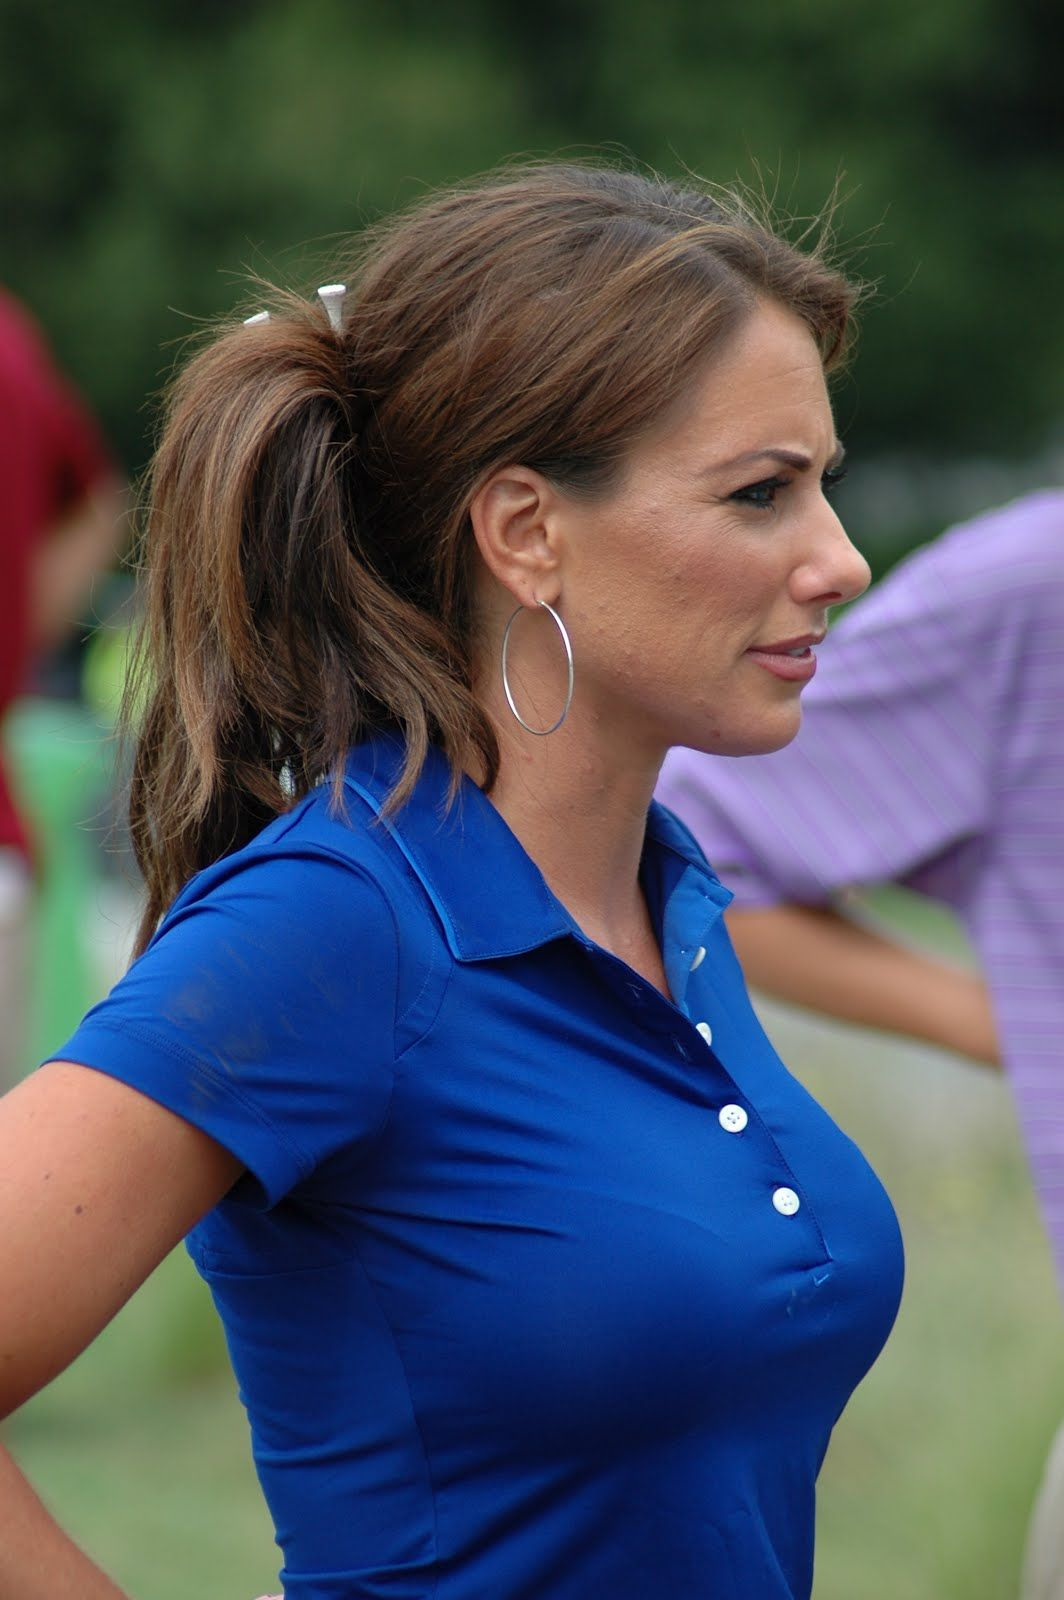 Holly Sonders nudes (24 foto), images Feet, YouTube, cameltoe 2020